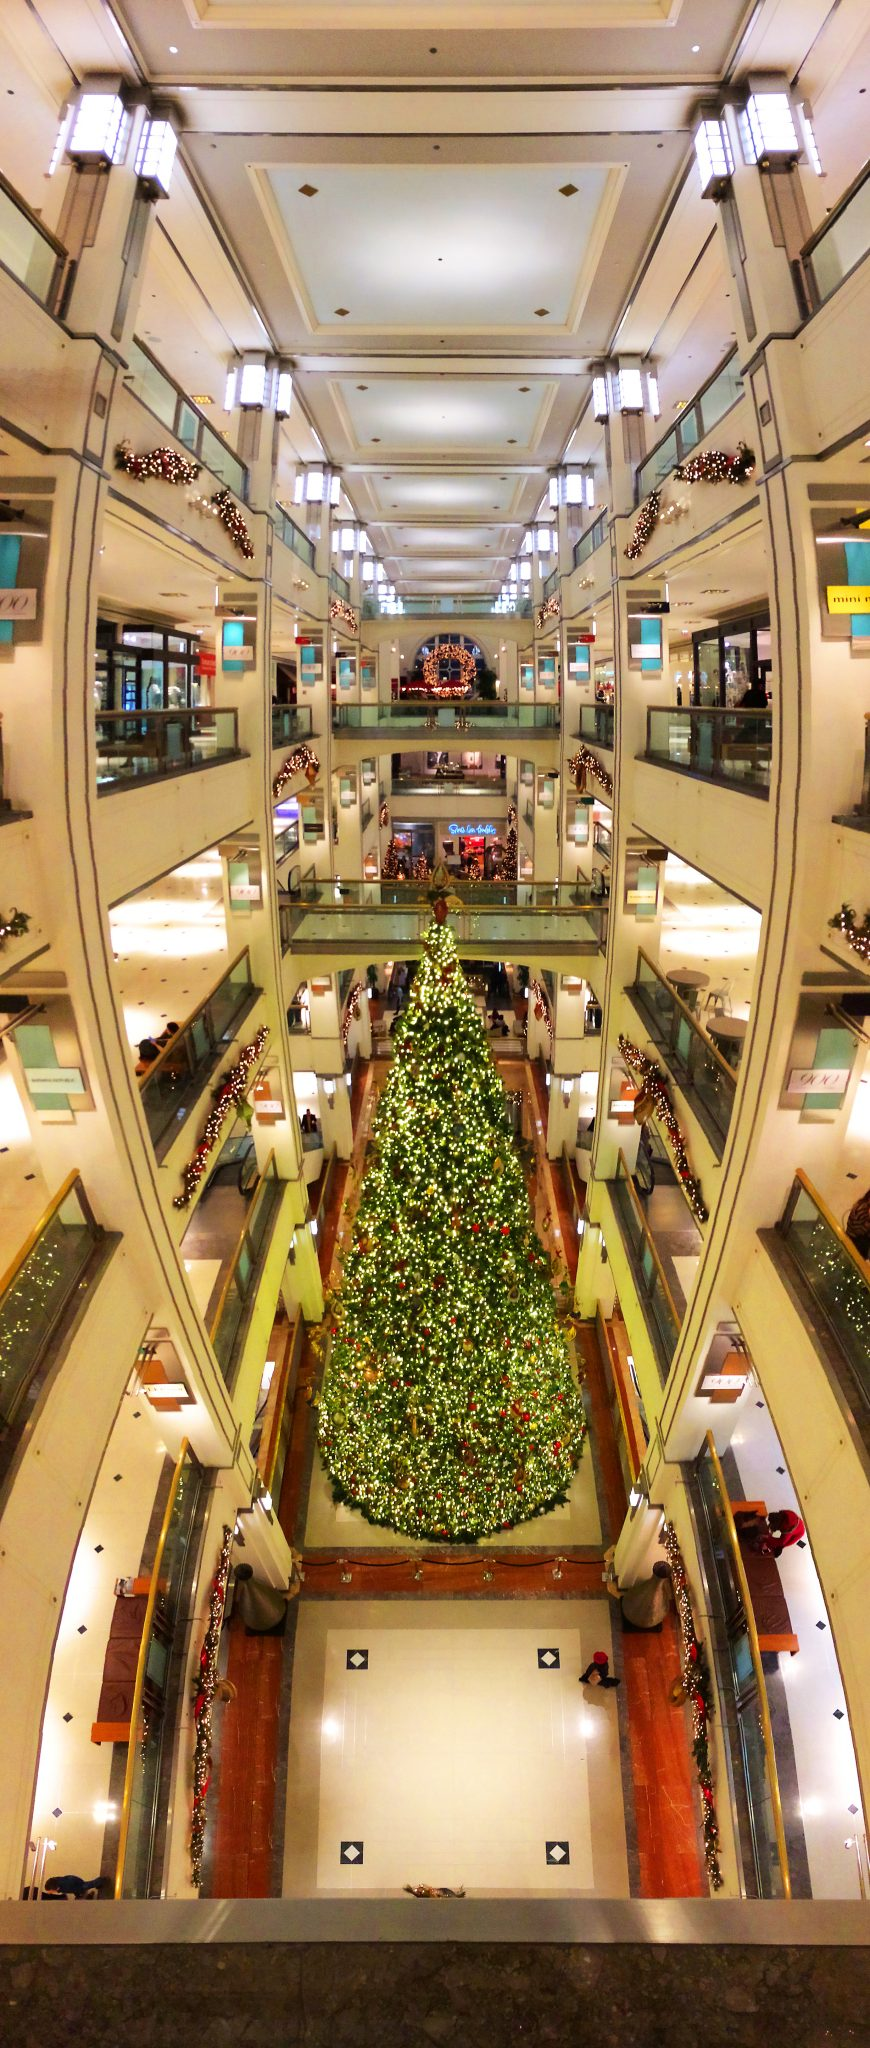 Wide angle view of Christmas tree from upper floor looking down into mall